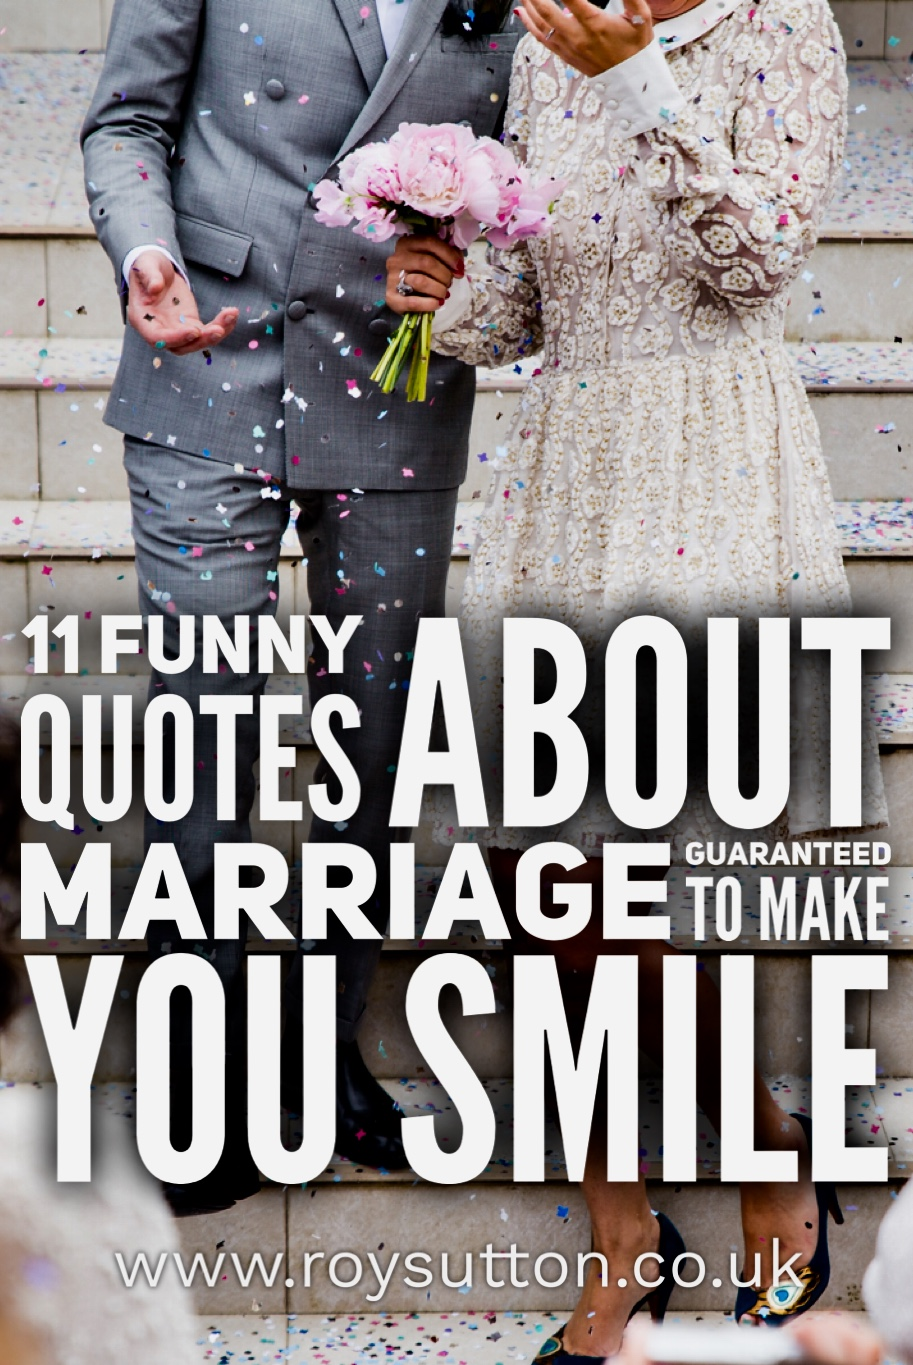 11 funny quotes about marriage guaranteed to make you smile ...